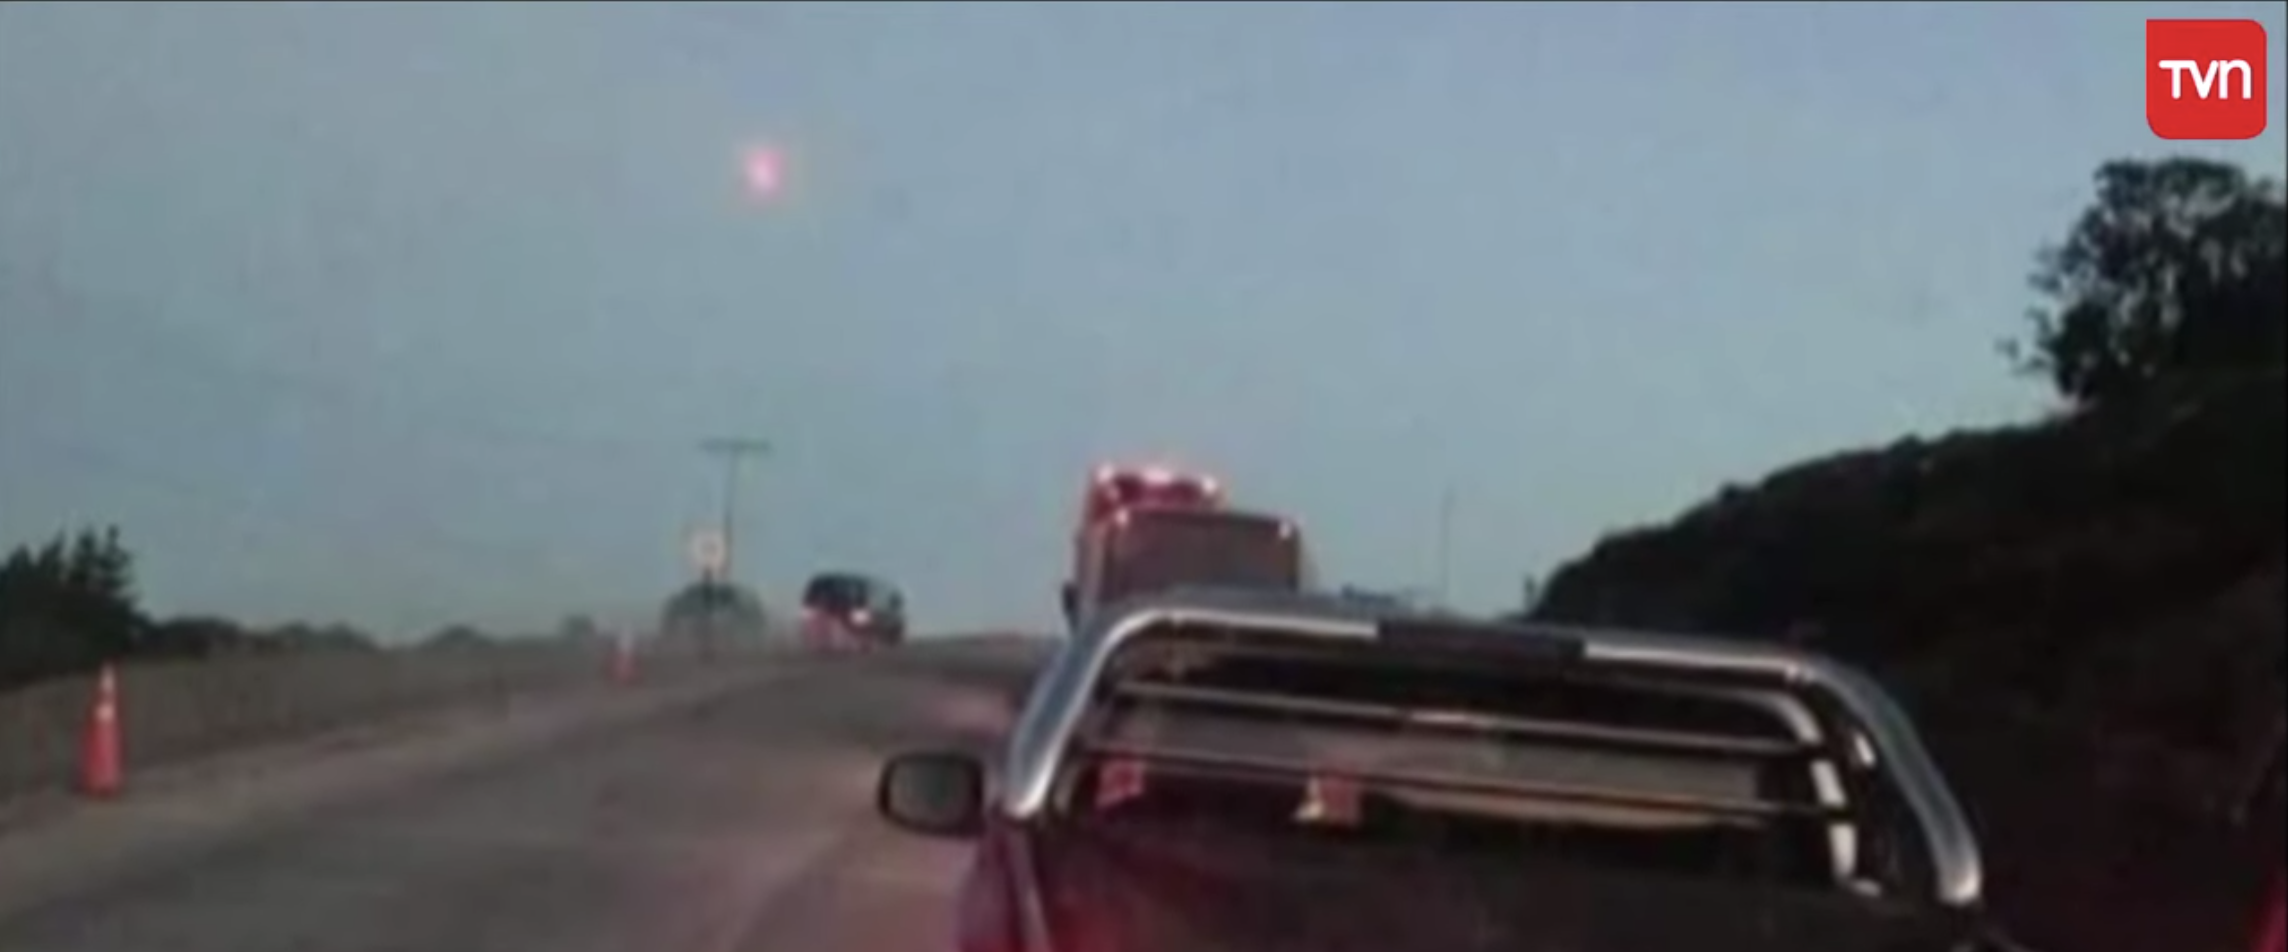 Strange Fireballs Soared Across Chile's Skies. They Weren't Meteorites.